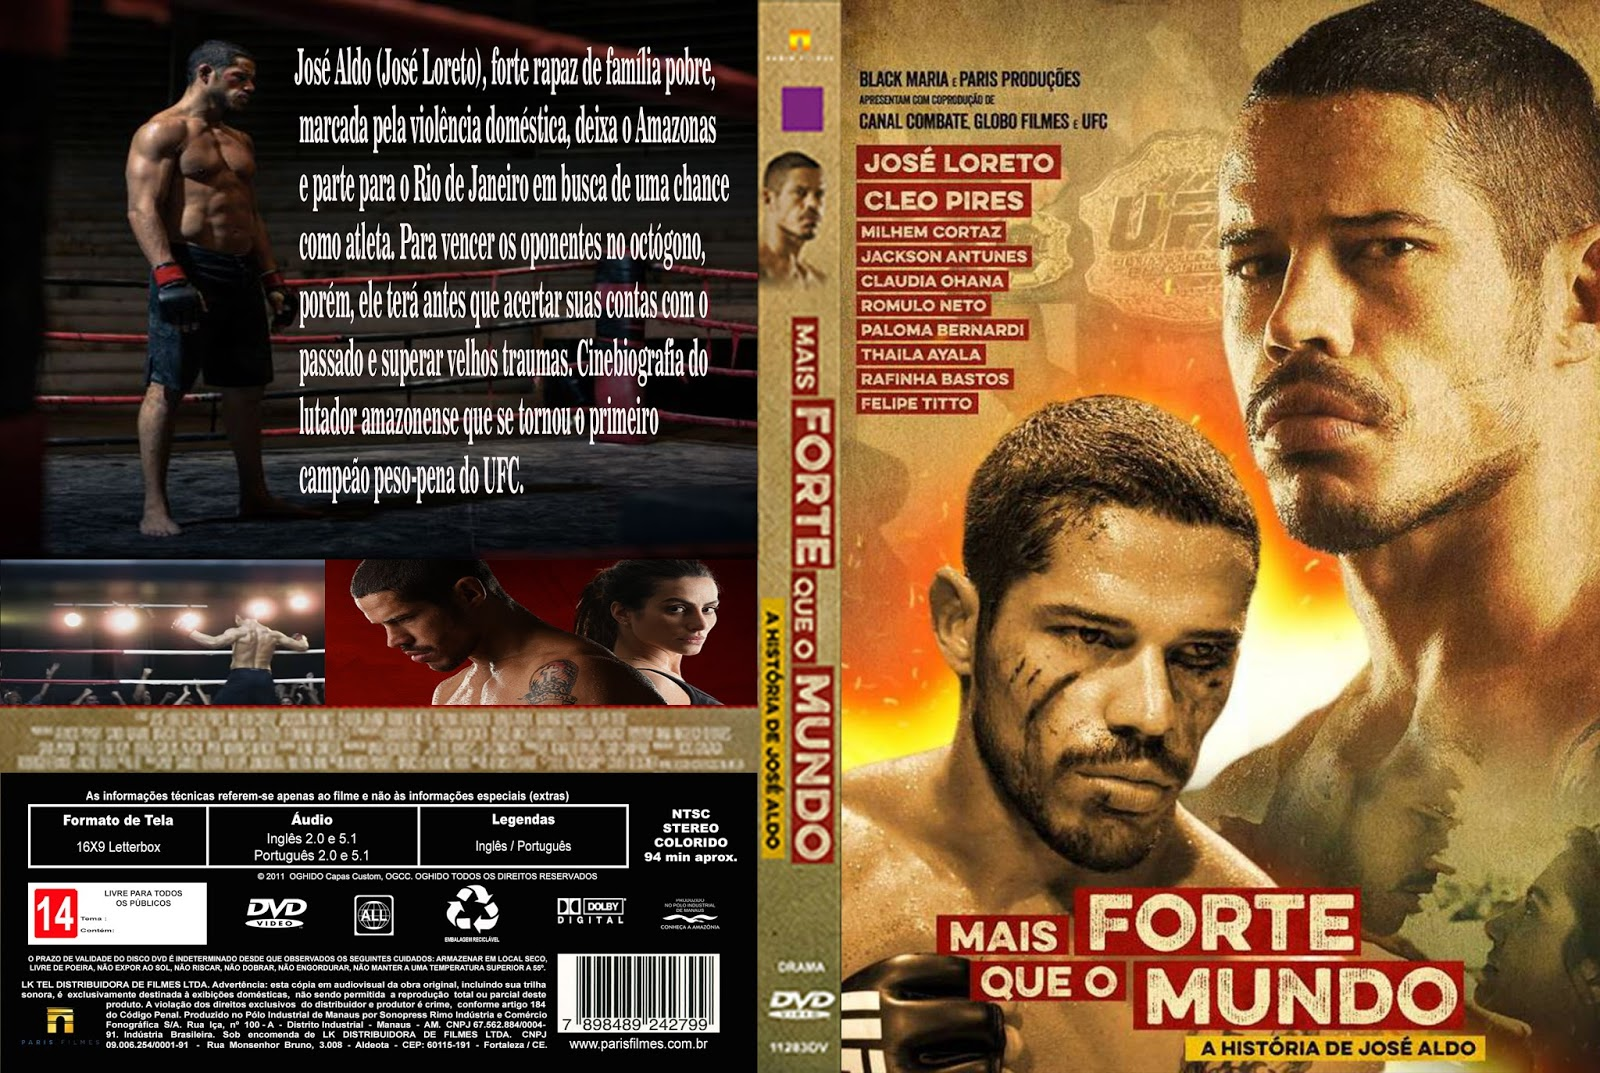 download online Mais Forte Que O Mundo A História de José Aldo (2016) Torrent 720p 1080p 5.1 completo full